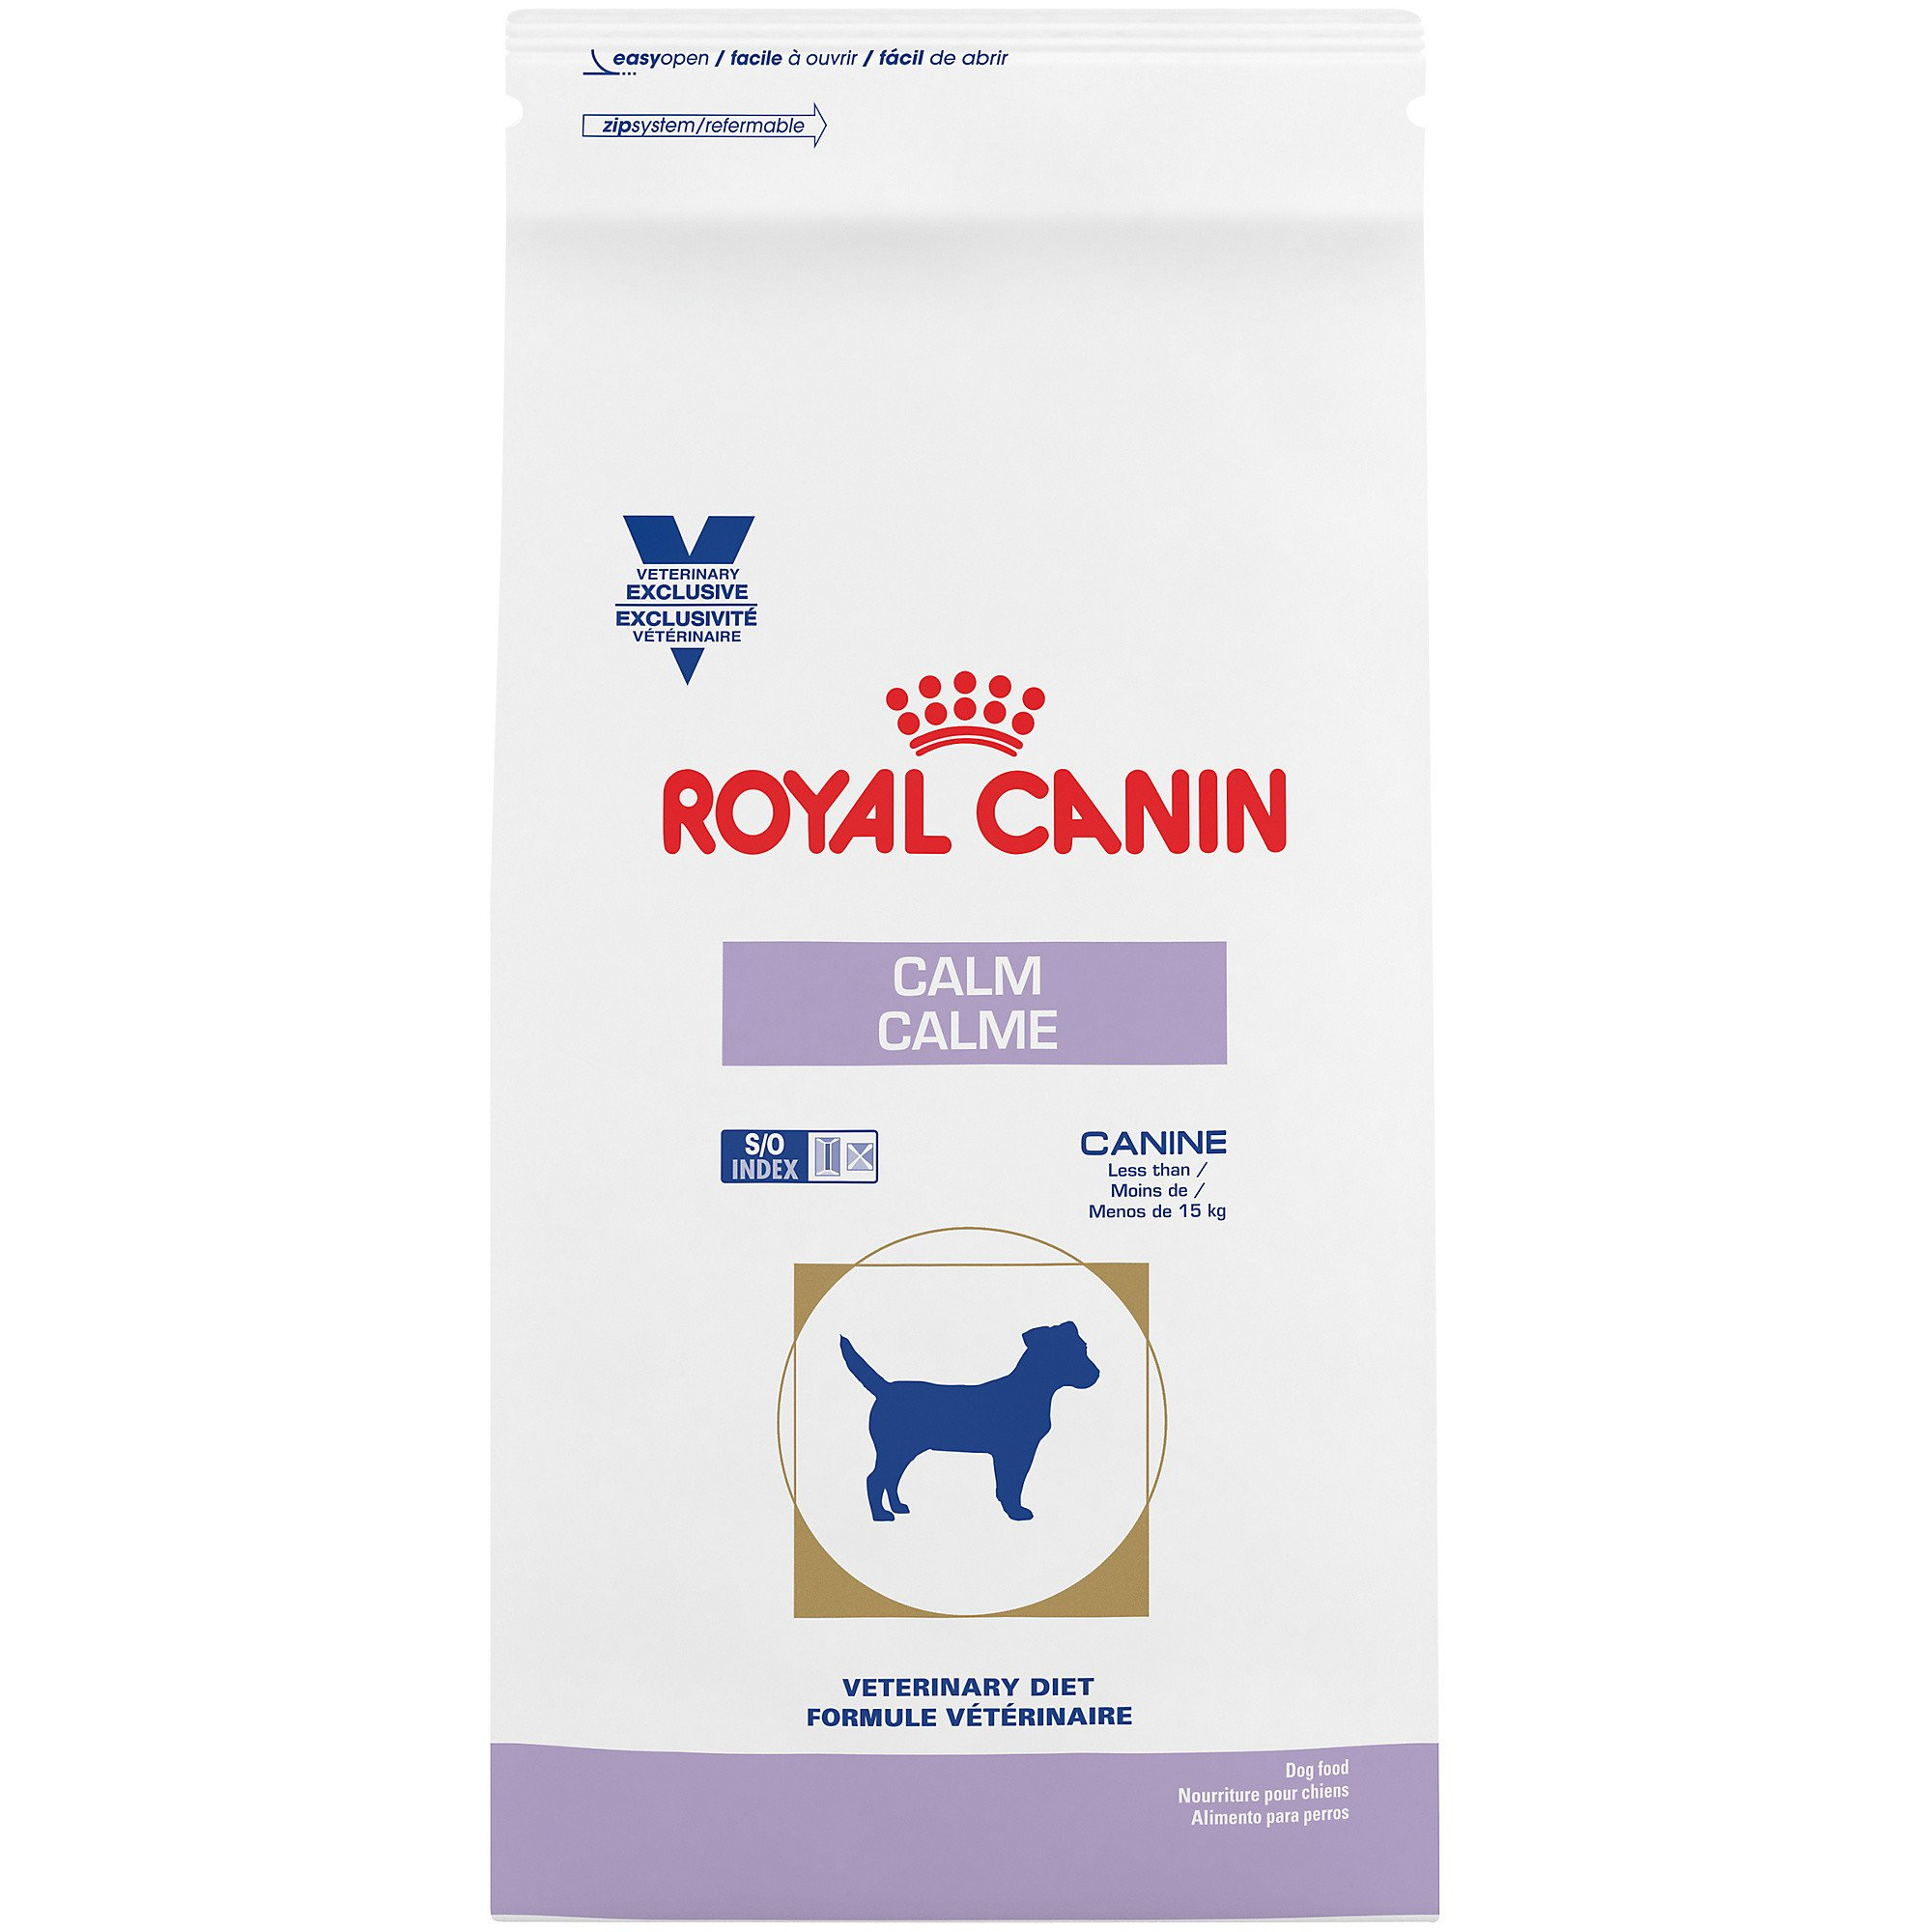 Royal canin cat food coupons petco